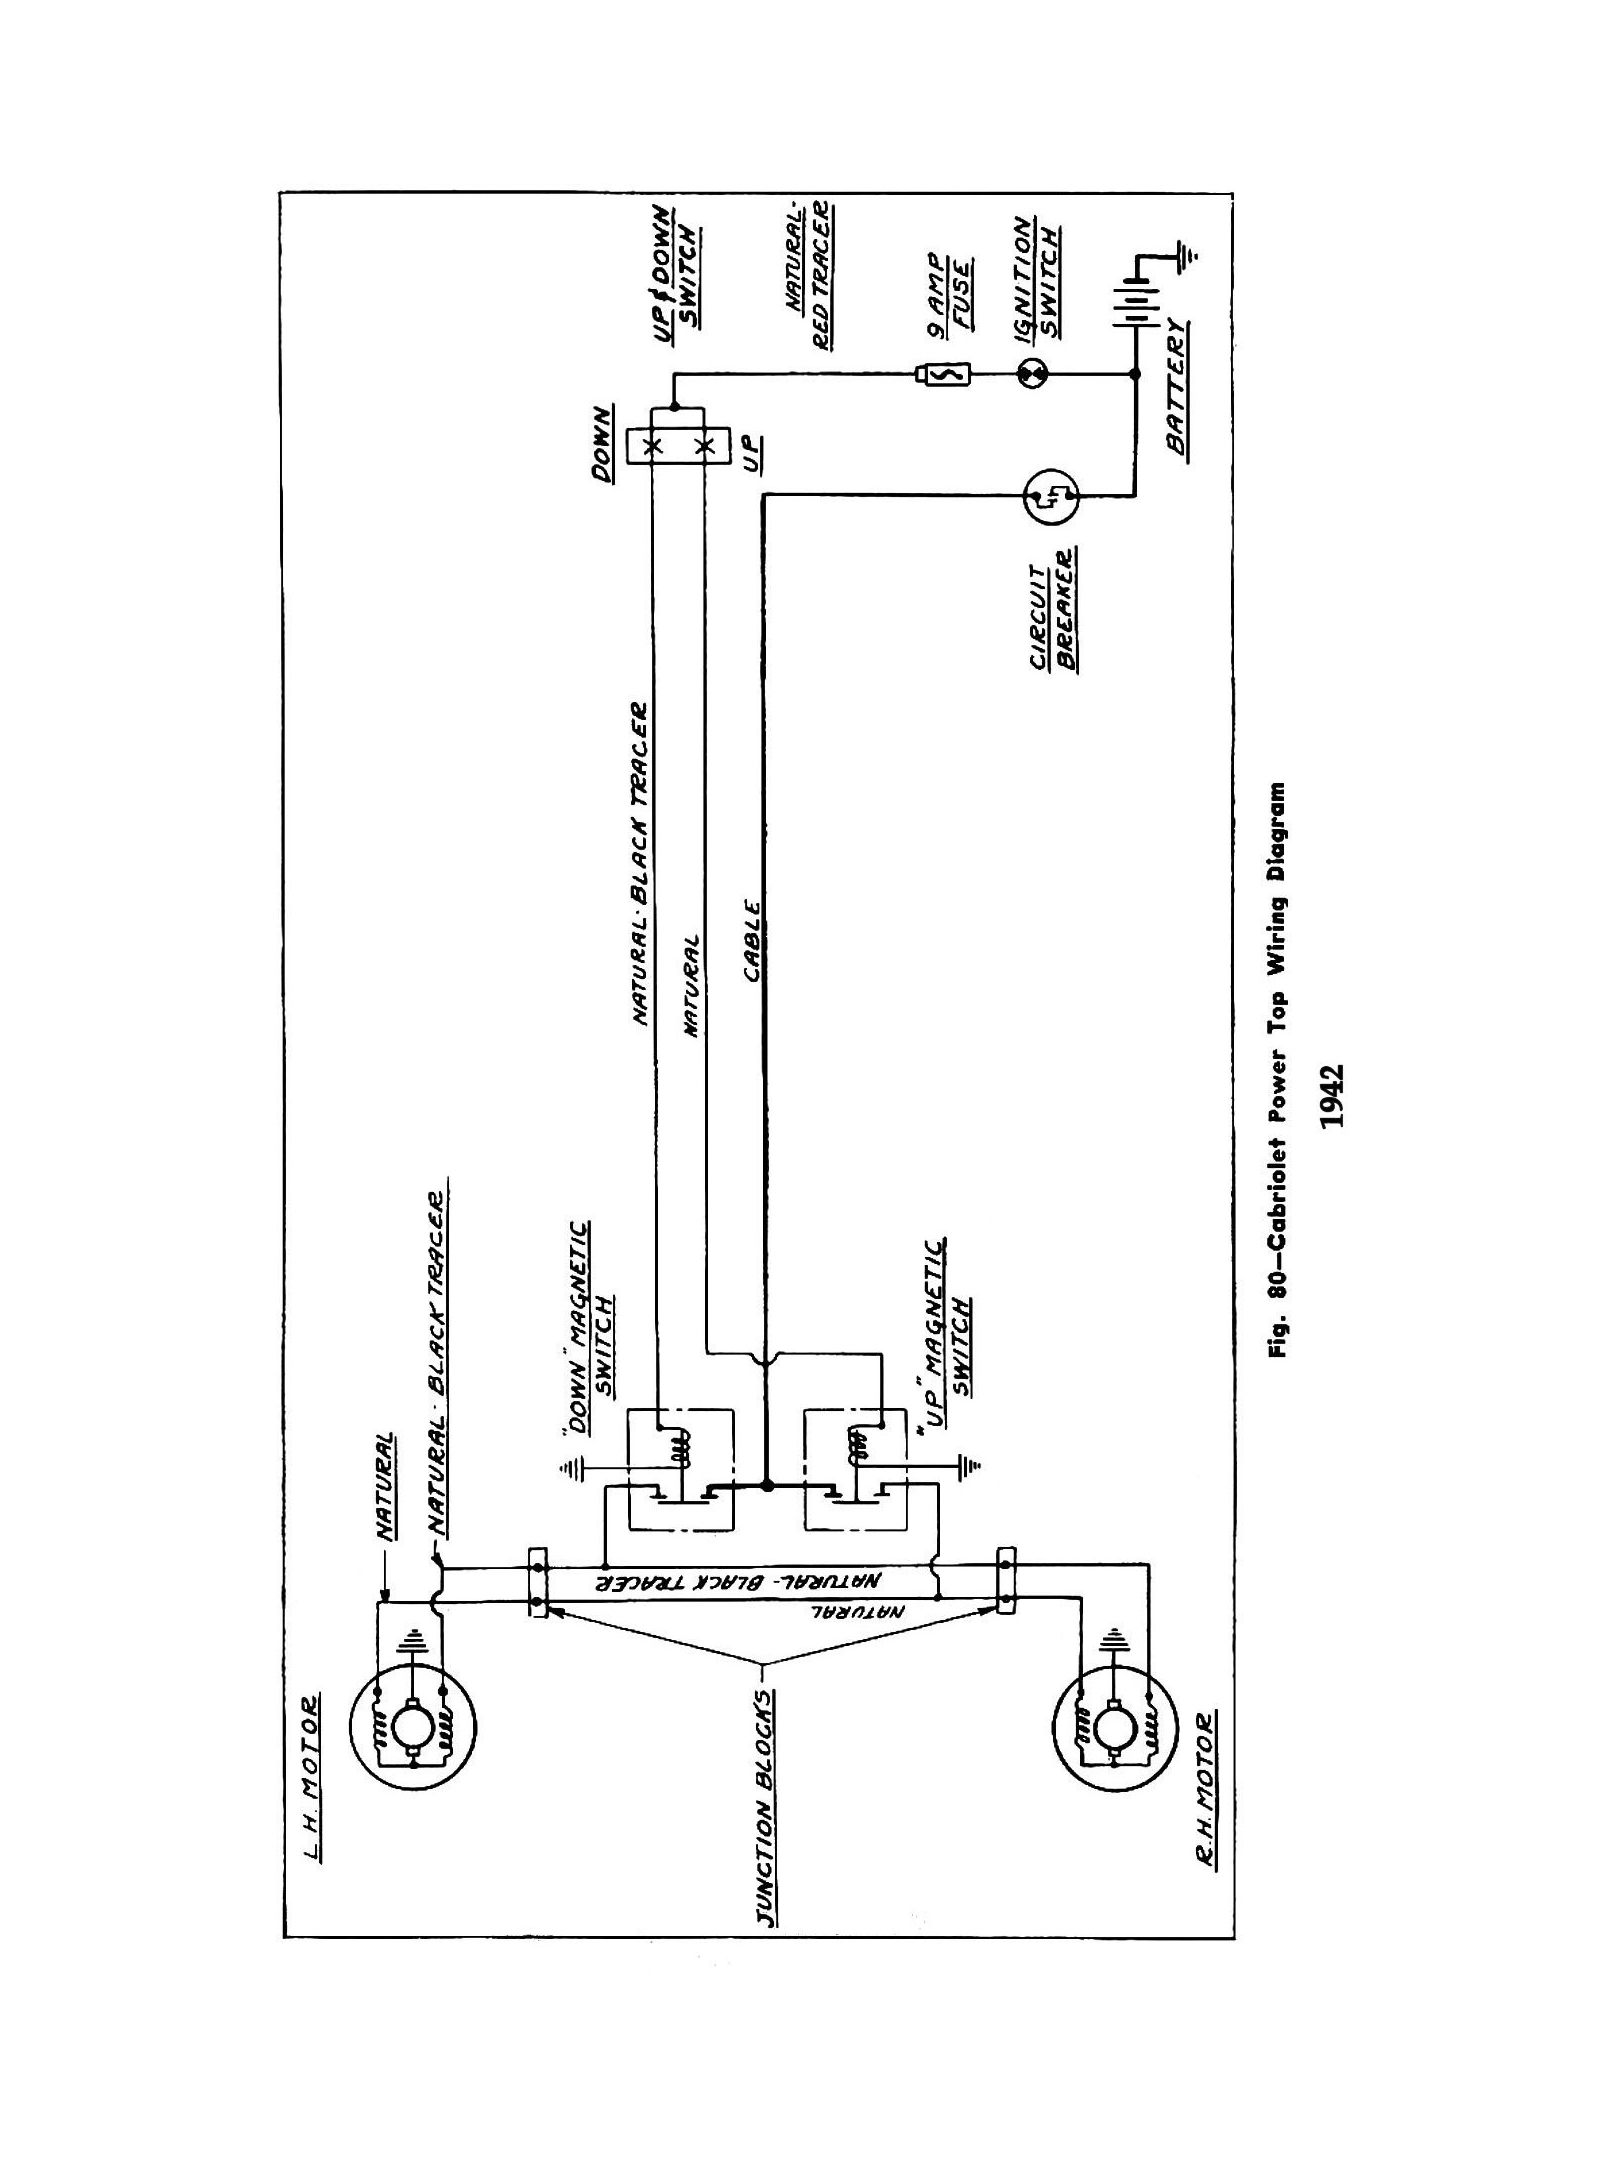 Farmall H Carburetor Diagram Sheet also 6u3c9 Need Simple Wireing Diagram 420 Crawler Need Ehe Ignition Chargin also Kohler  mand Electrical Diagram Ammeter also Case Ih 885 Engine Service Manual Htih Sengd155 moreover 1950 Chevrolet 3100 Wiring Diagram. on farmall h electrical wiring diagram